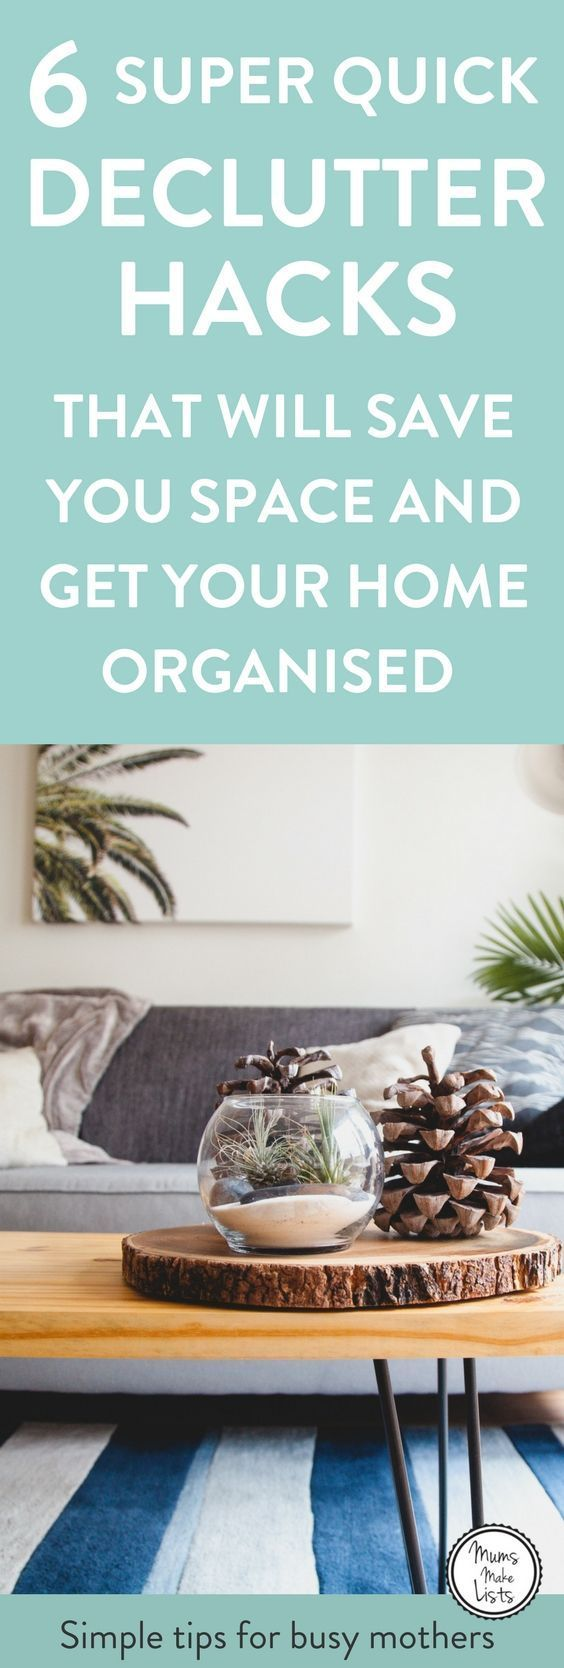 Declutter your home using these 6 quick decluttering tips to make it clutter free. It is important to put some time aside and to declutter, it stops you feeling overwhelmed and gives you more space in your home #Declutter #declutteringtips #declutteringideas #declutterhelp